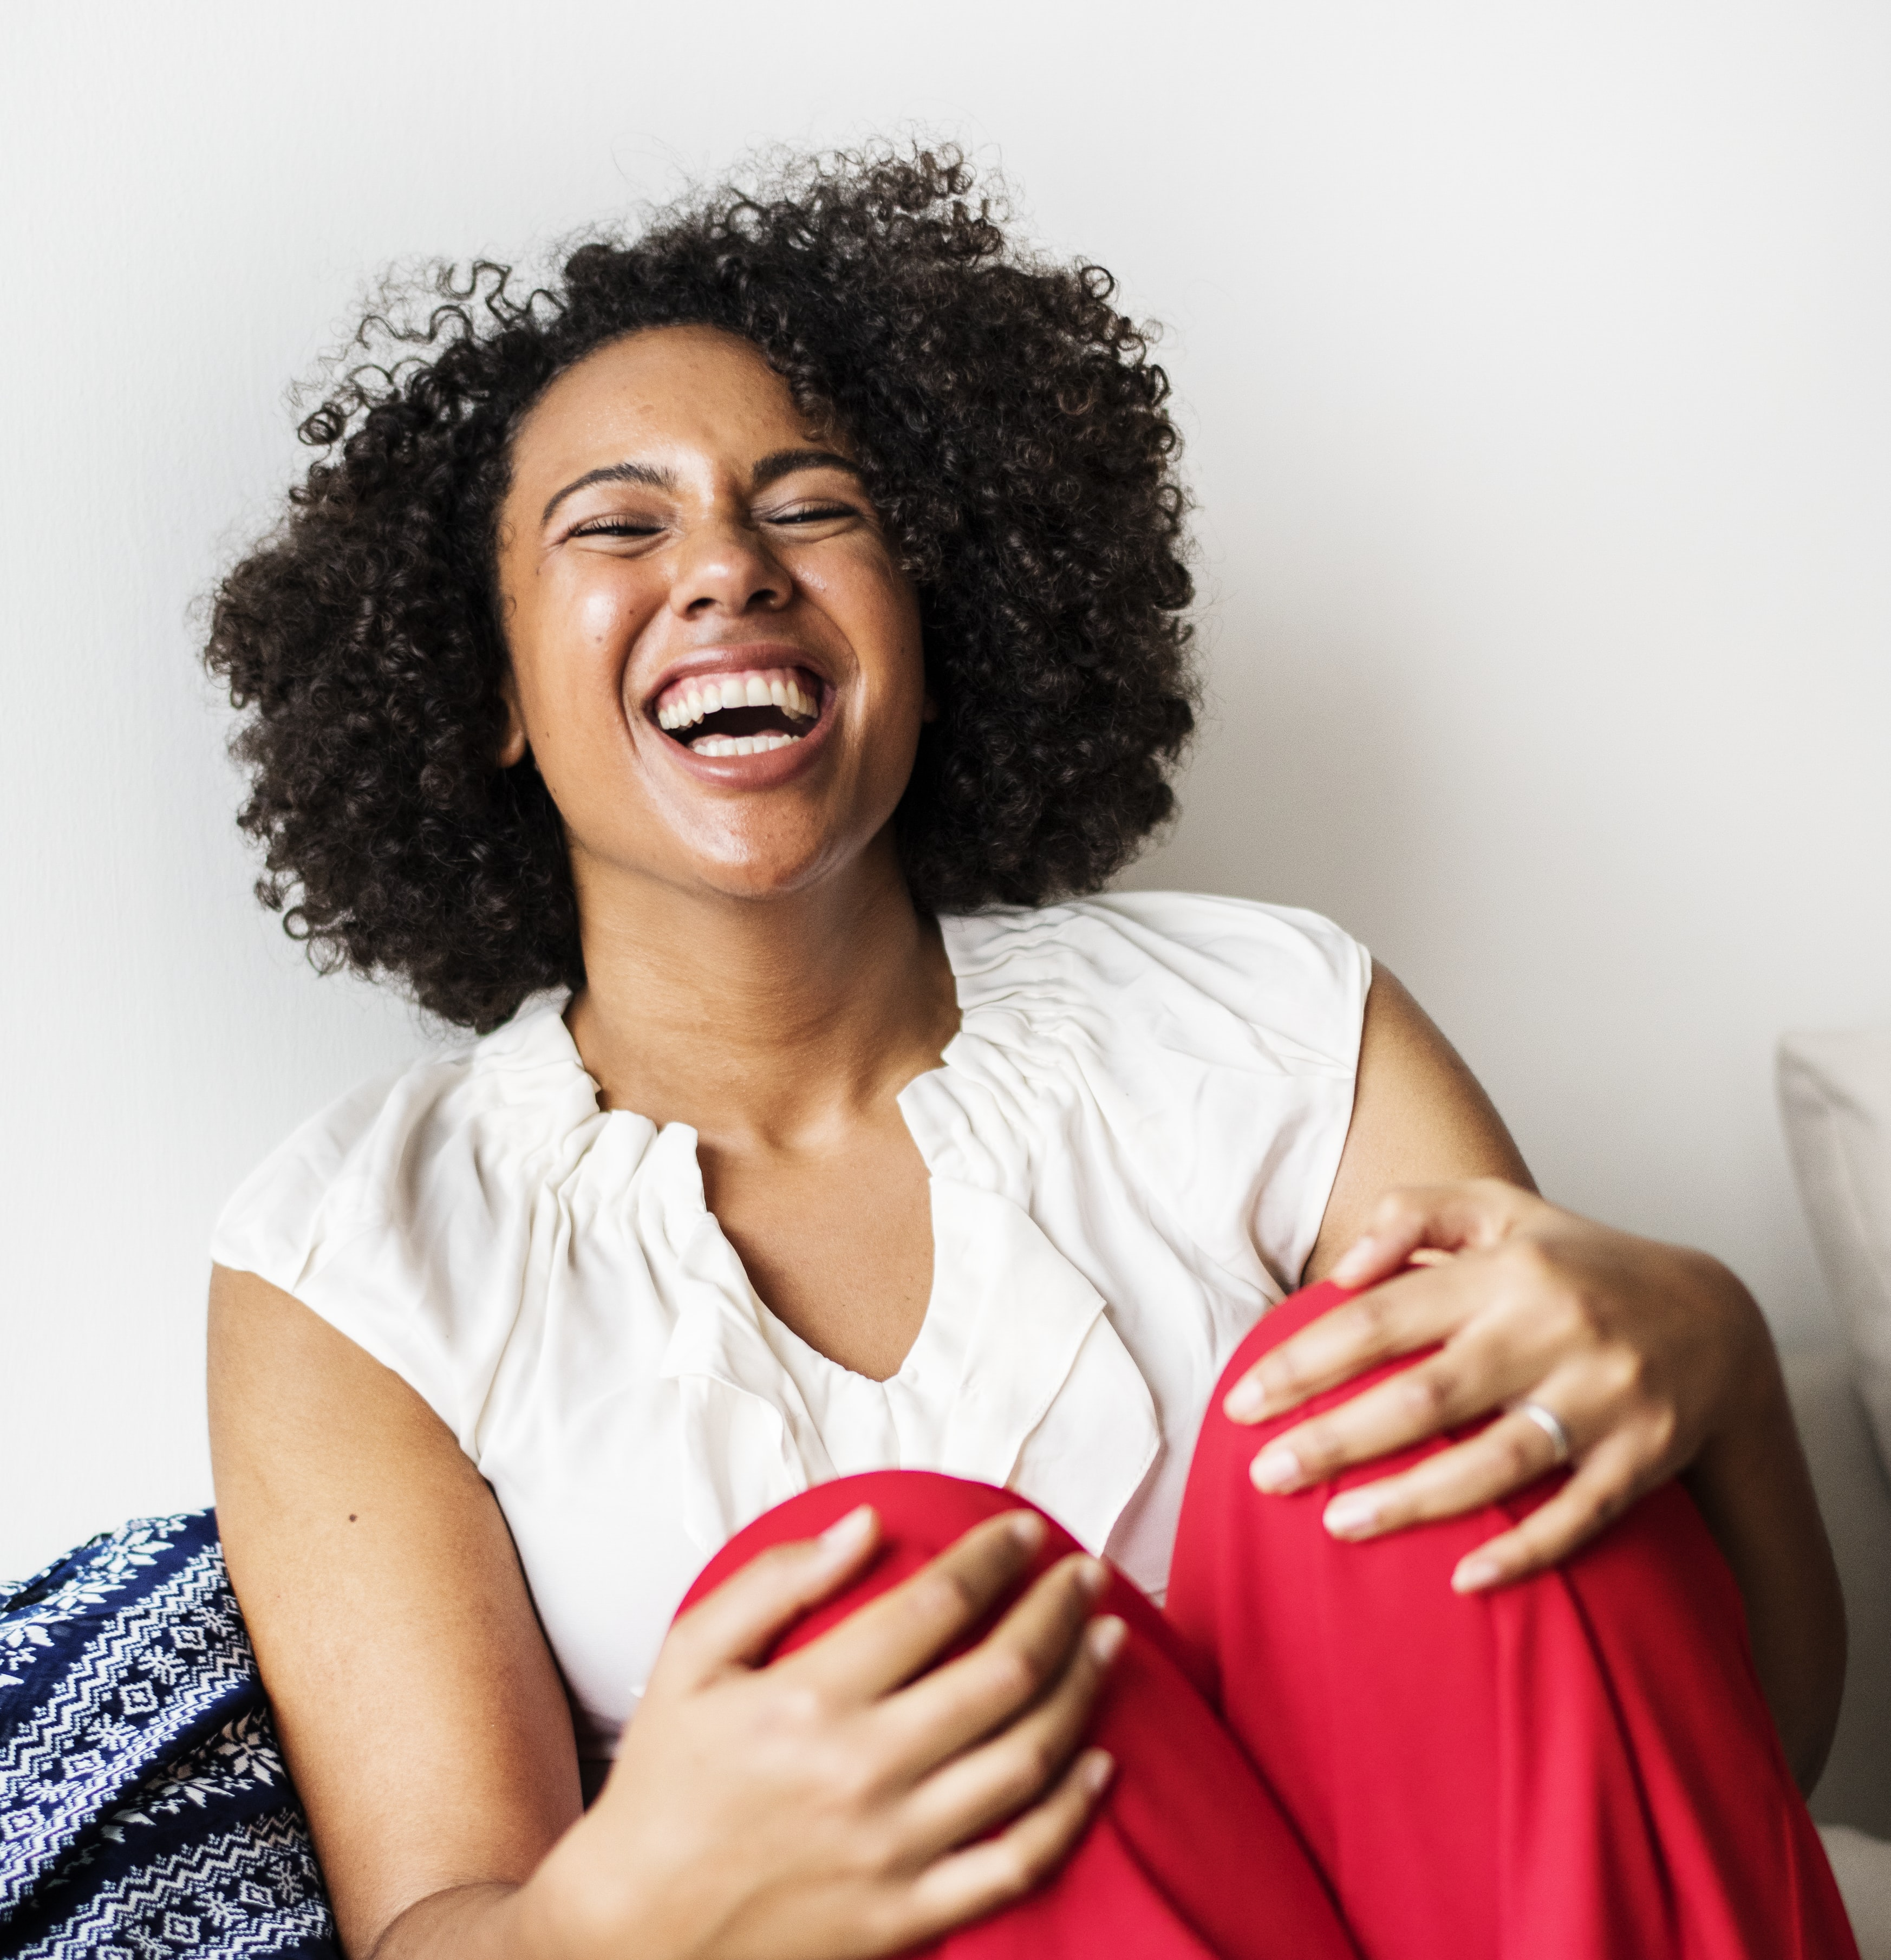 woman holding her knees while smiling